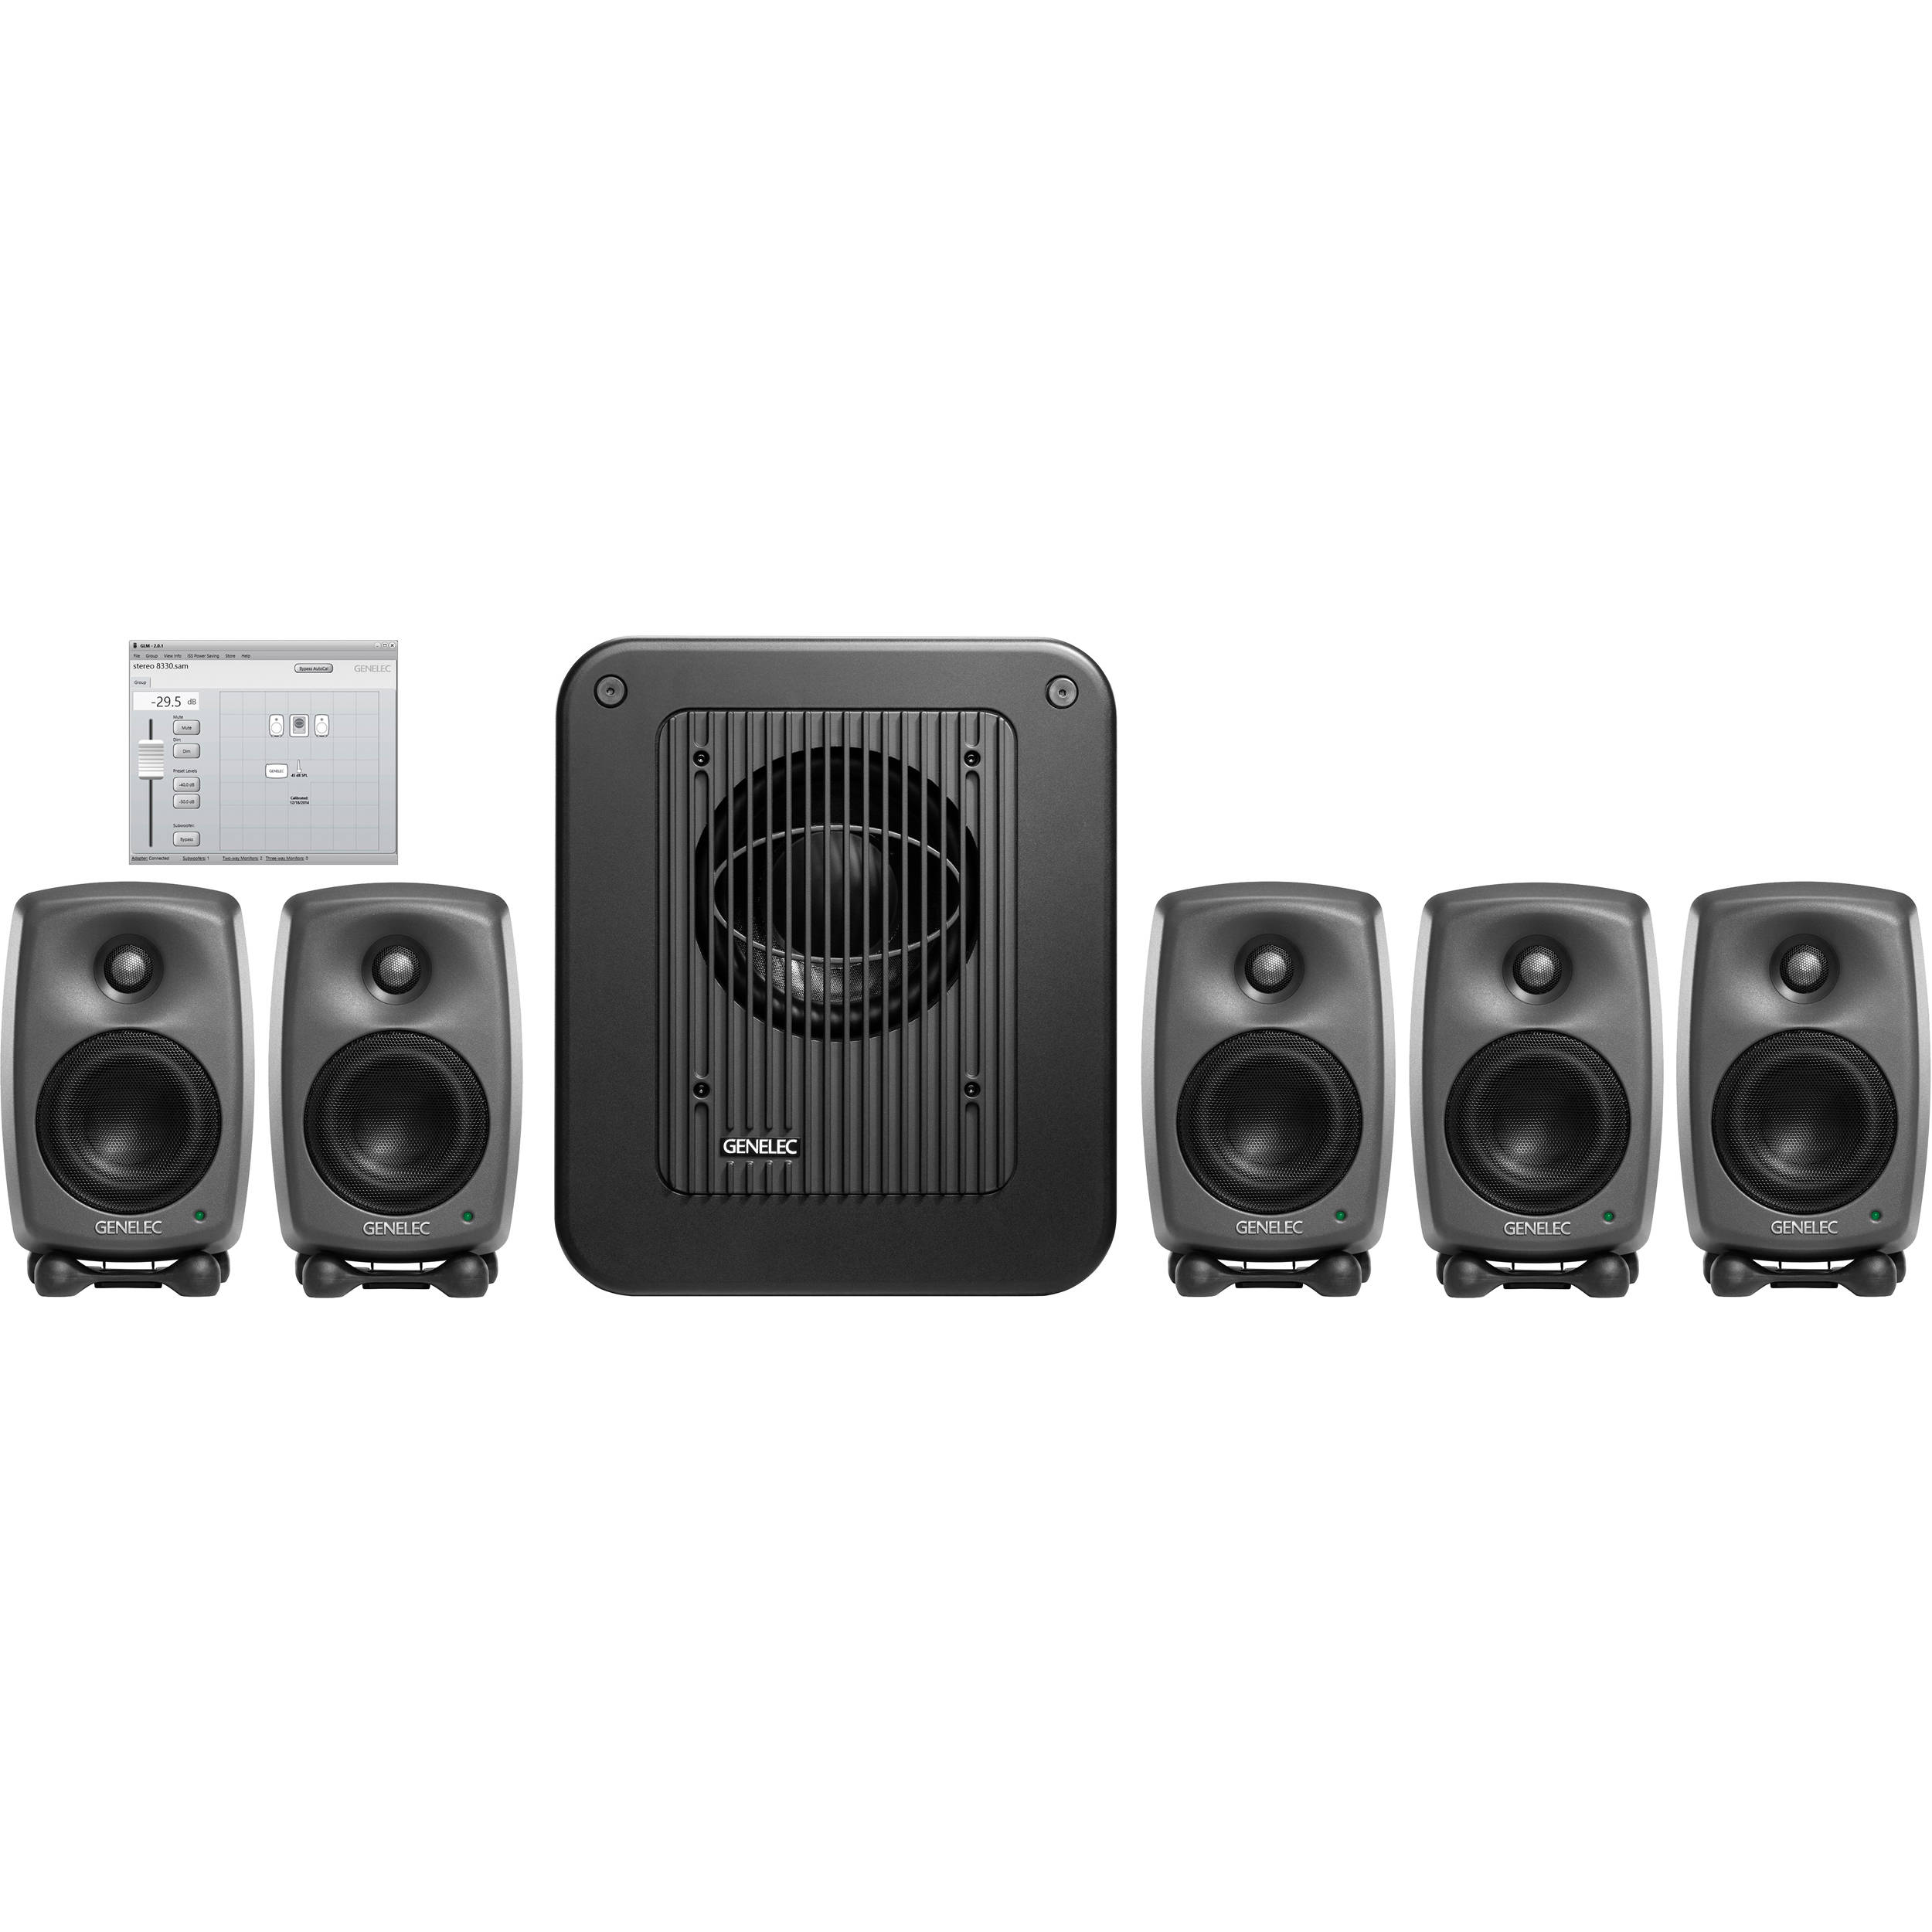 Genelec 8320lse Surround Sam Five Bh Subwoofer Filter Crossover 11 90 Hz Frequency Circuit Free Picture Lse 8320a One 7350a Glm V2